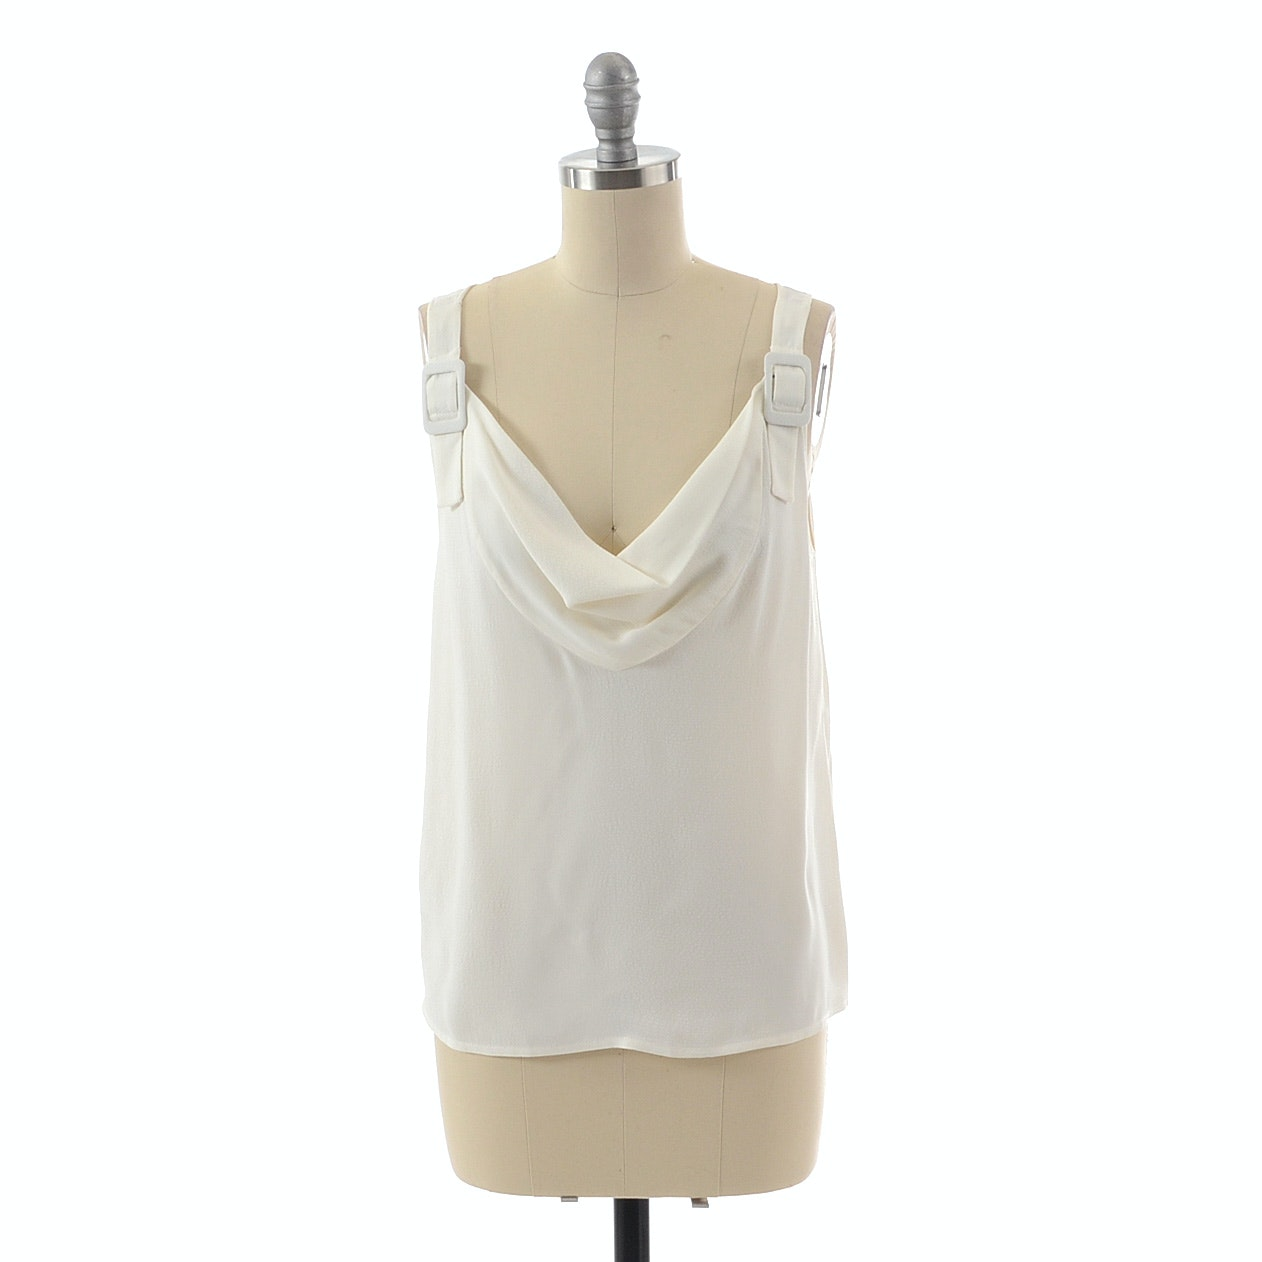 Luca Luca Sleeveless Blouse in White with Buckled Straps From The 2011 Cruise Collection